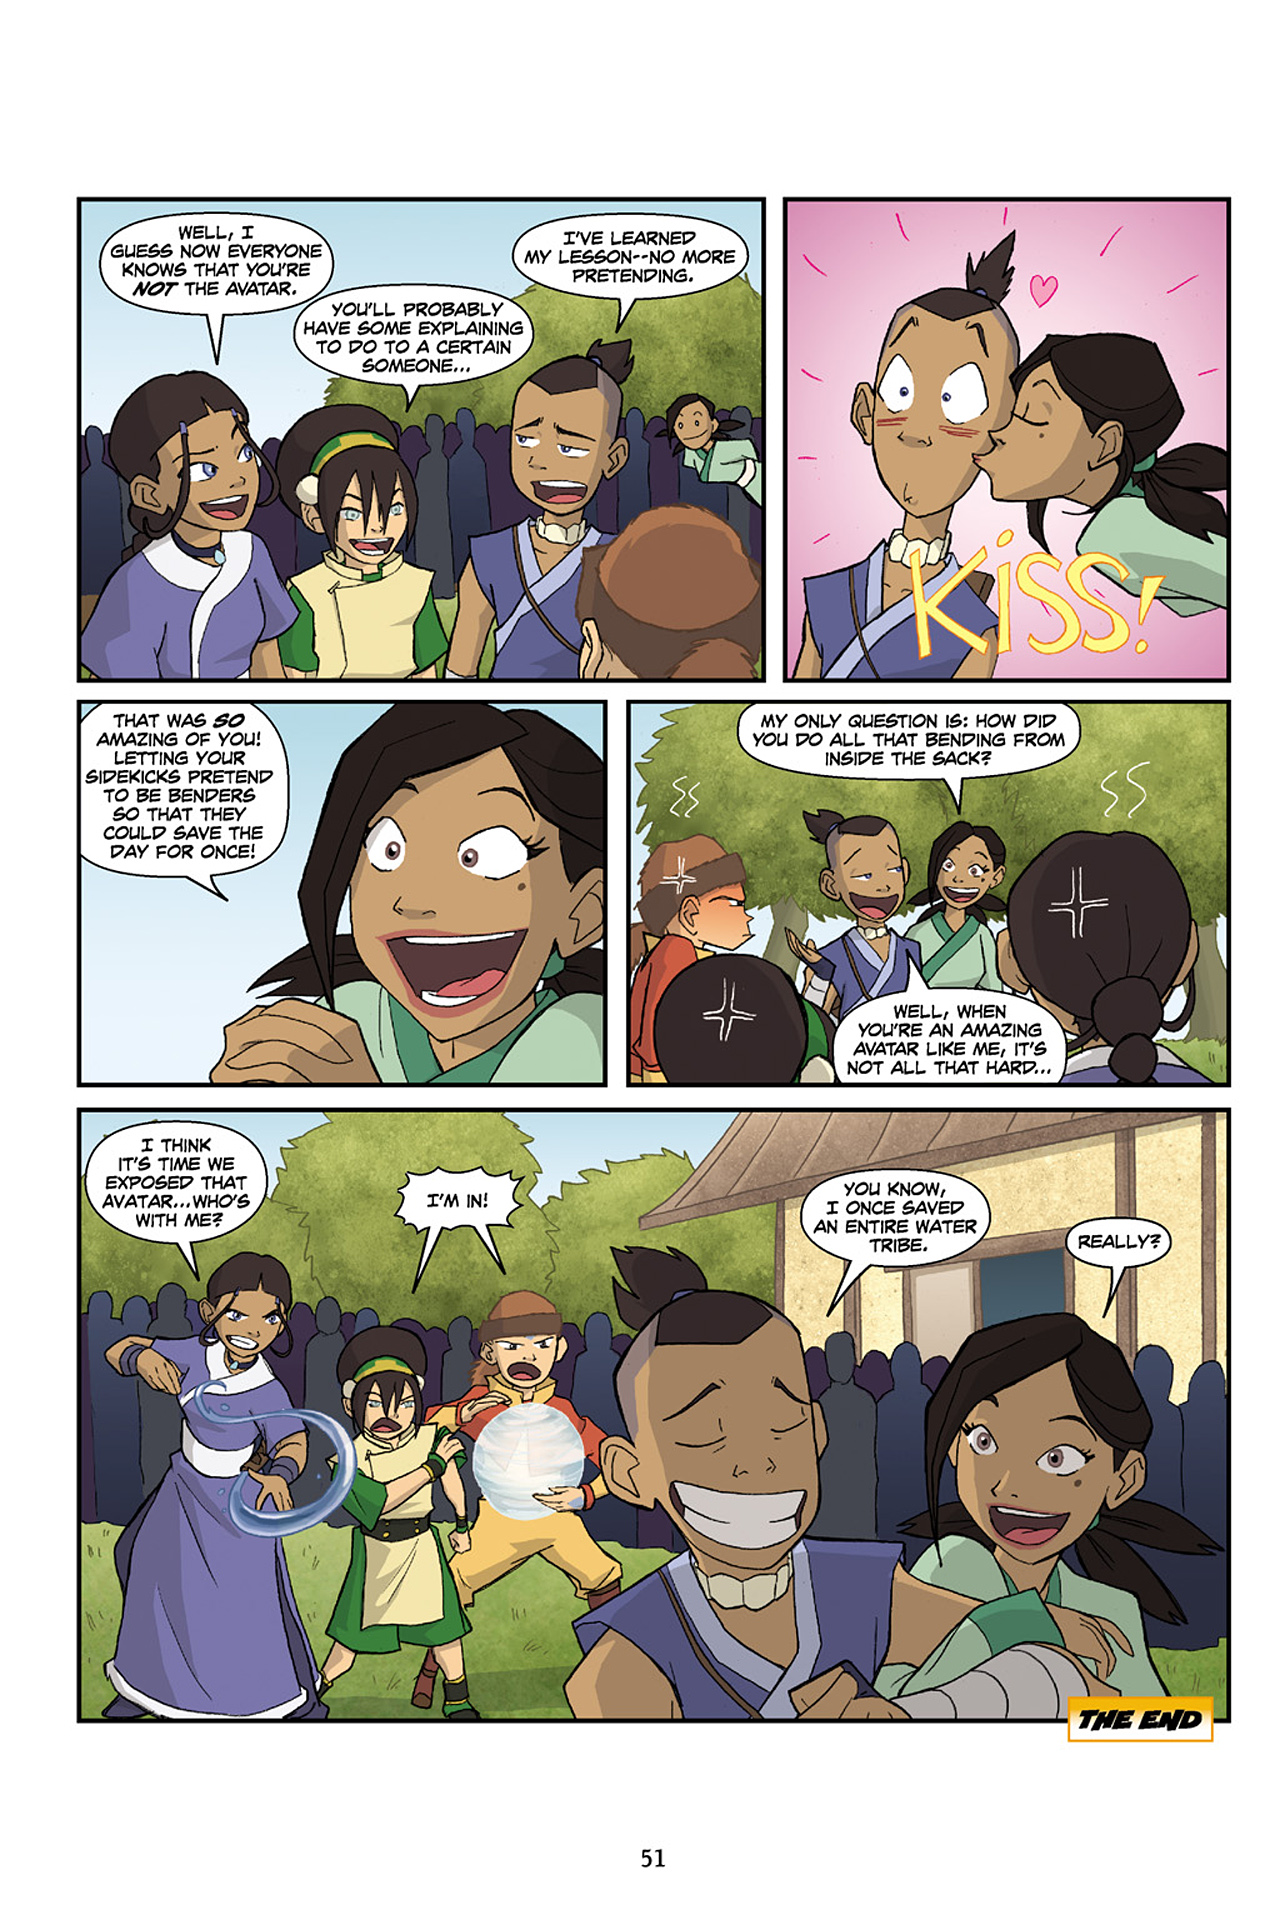 Nickelodeon Avatar: The Last Airbender - The Lost Adventures chap full pic 52